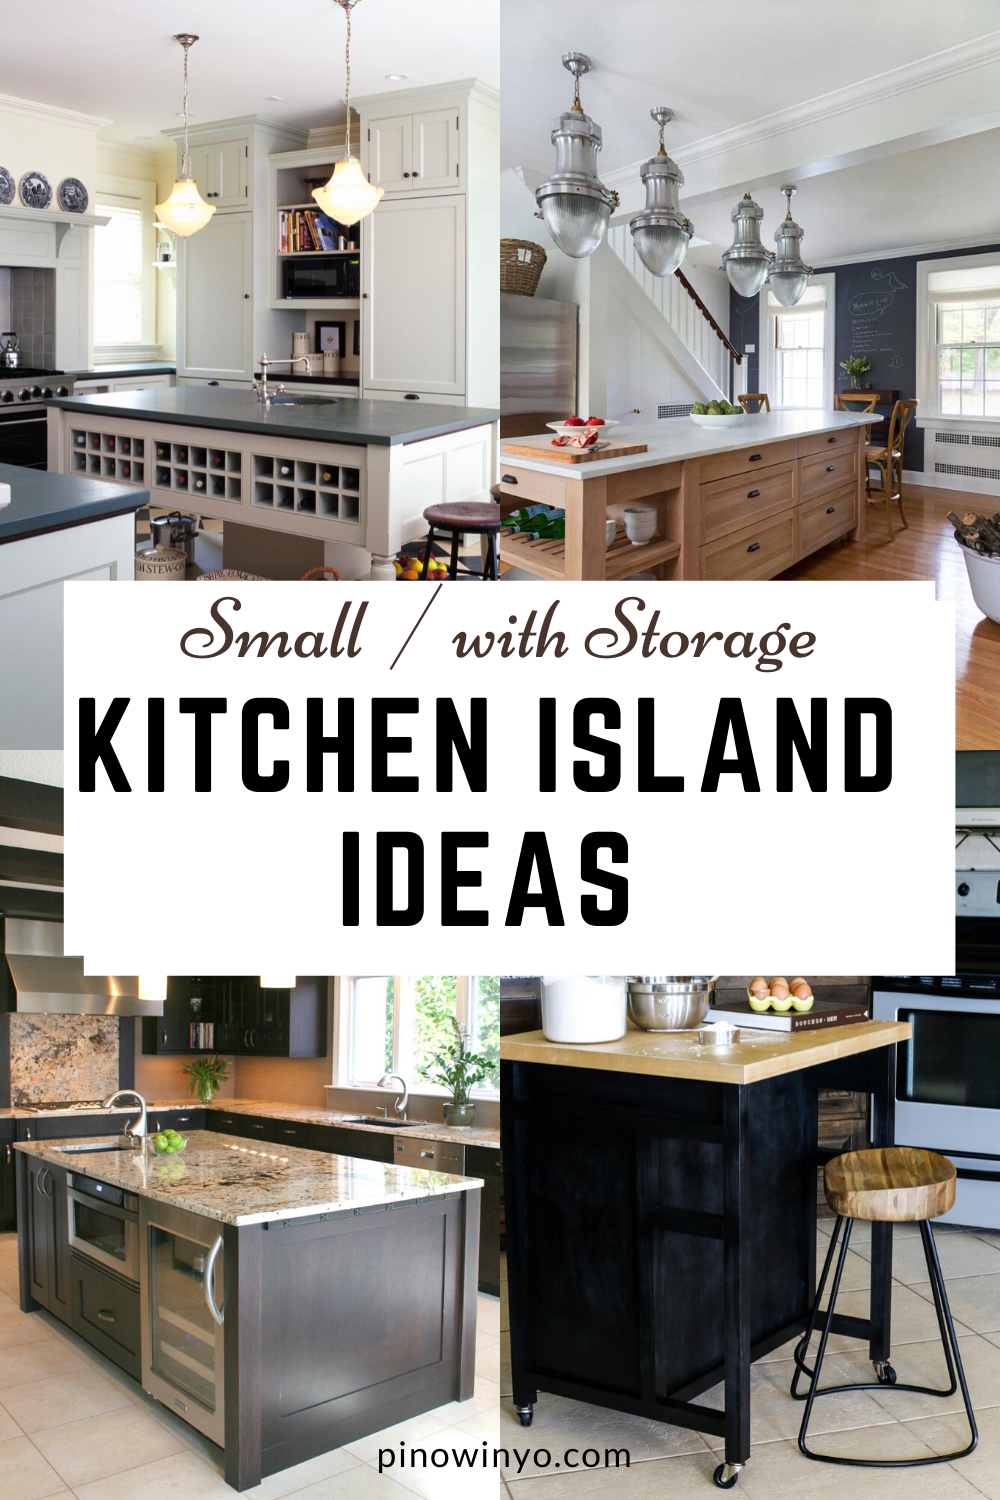 56 Small Kitchen Island Ideas With Storage Creative Designs From Masters In 2020 Small Kitchen Storage Small Kitchen Island Kitchen Island Table